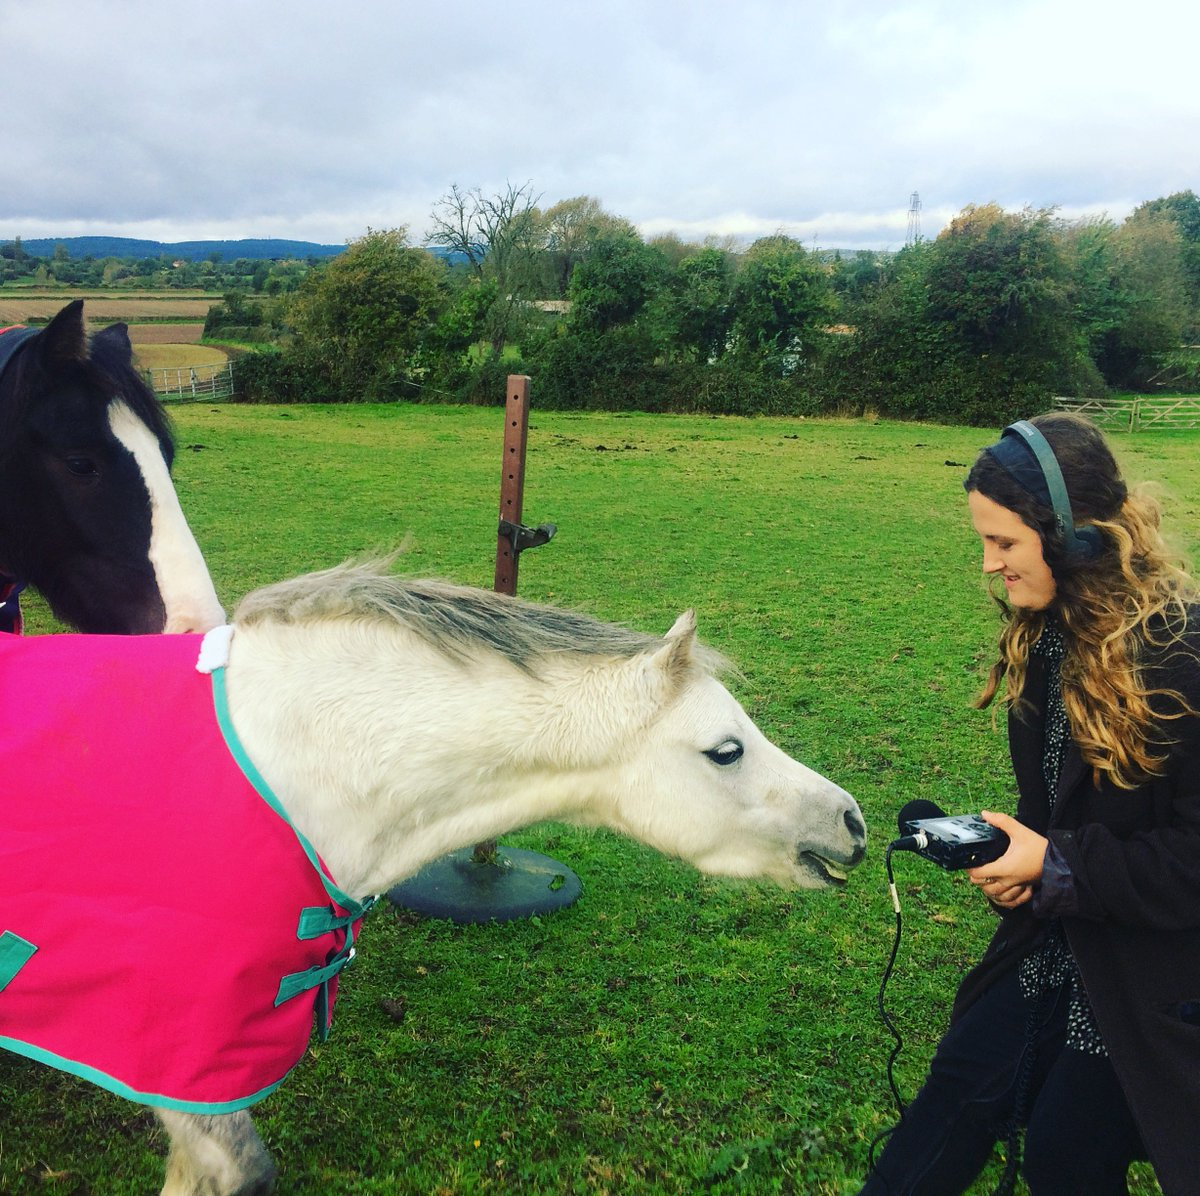 Are apples safe for horses Horses love apples and they